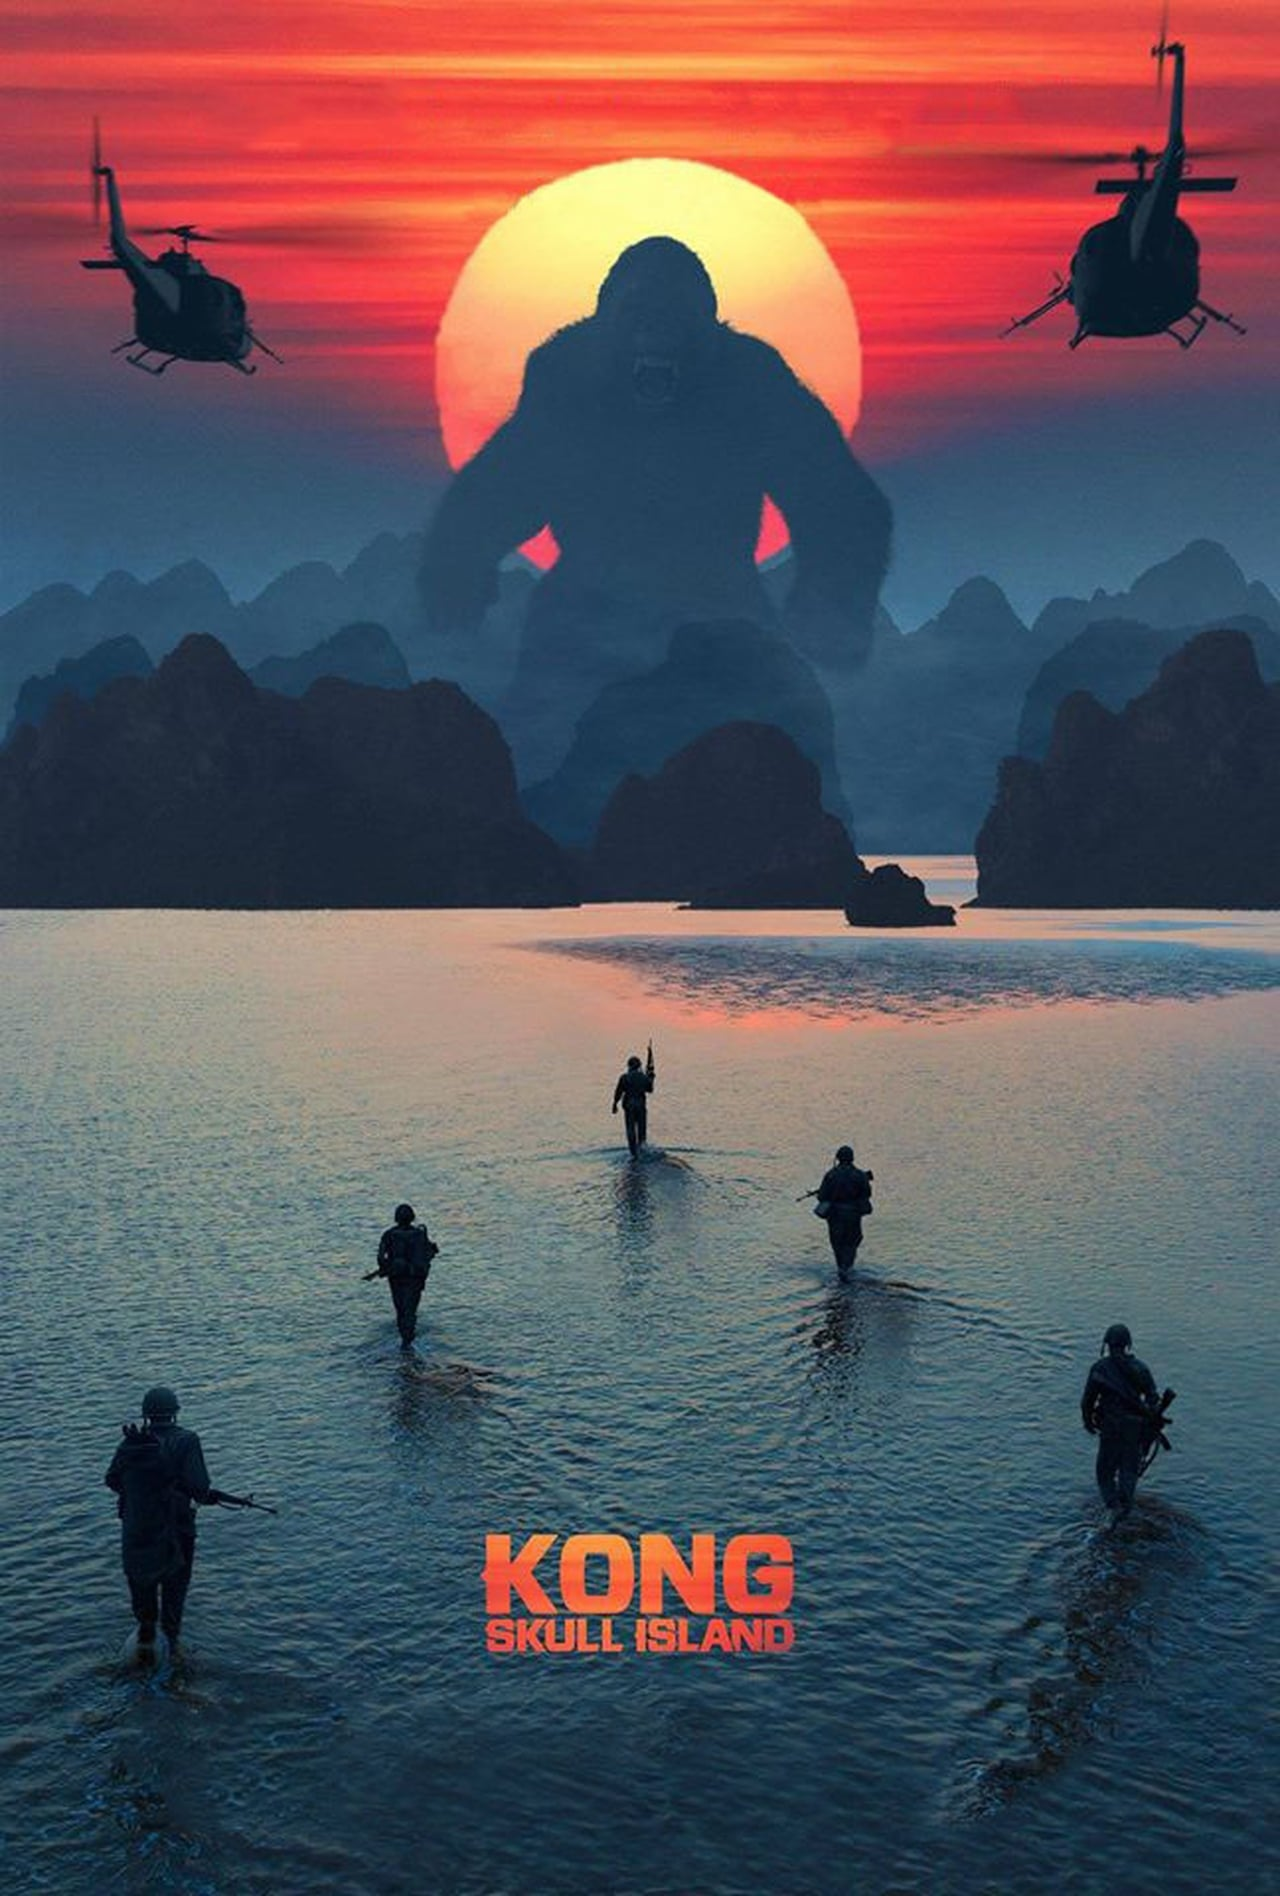 [Watch] Full Movie Kong: Skull Island (2017) Original